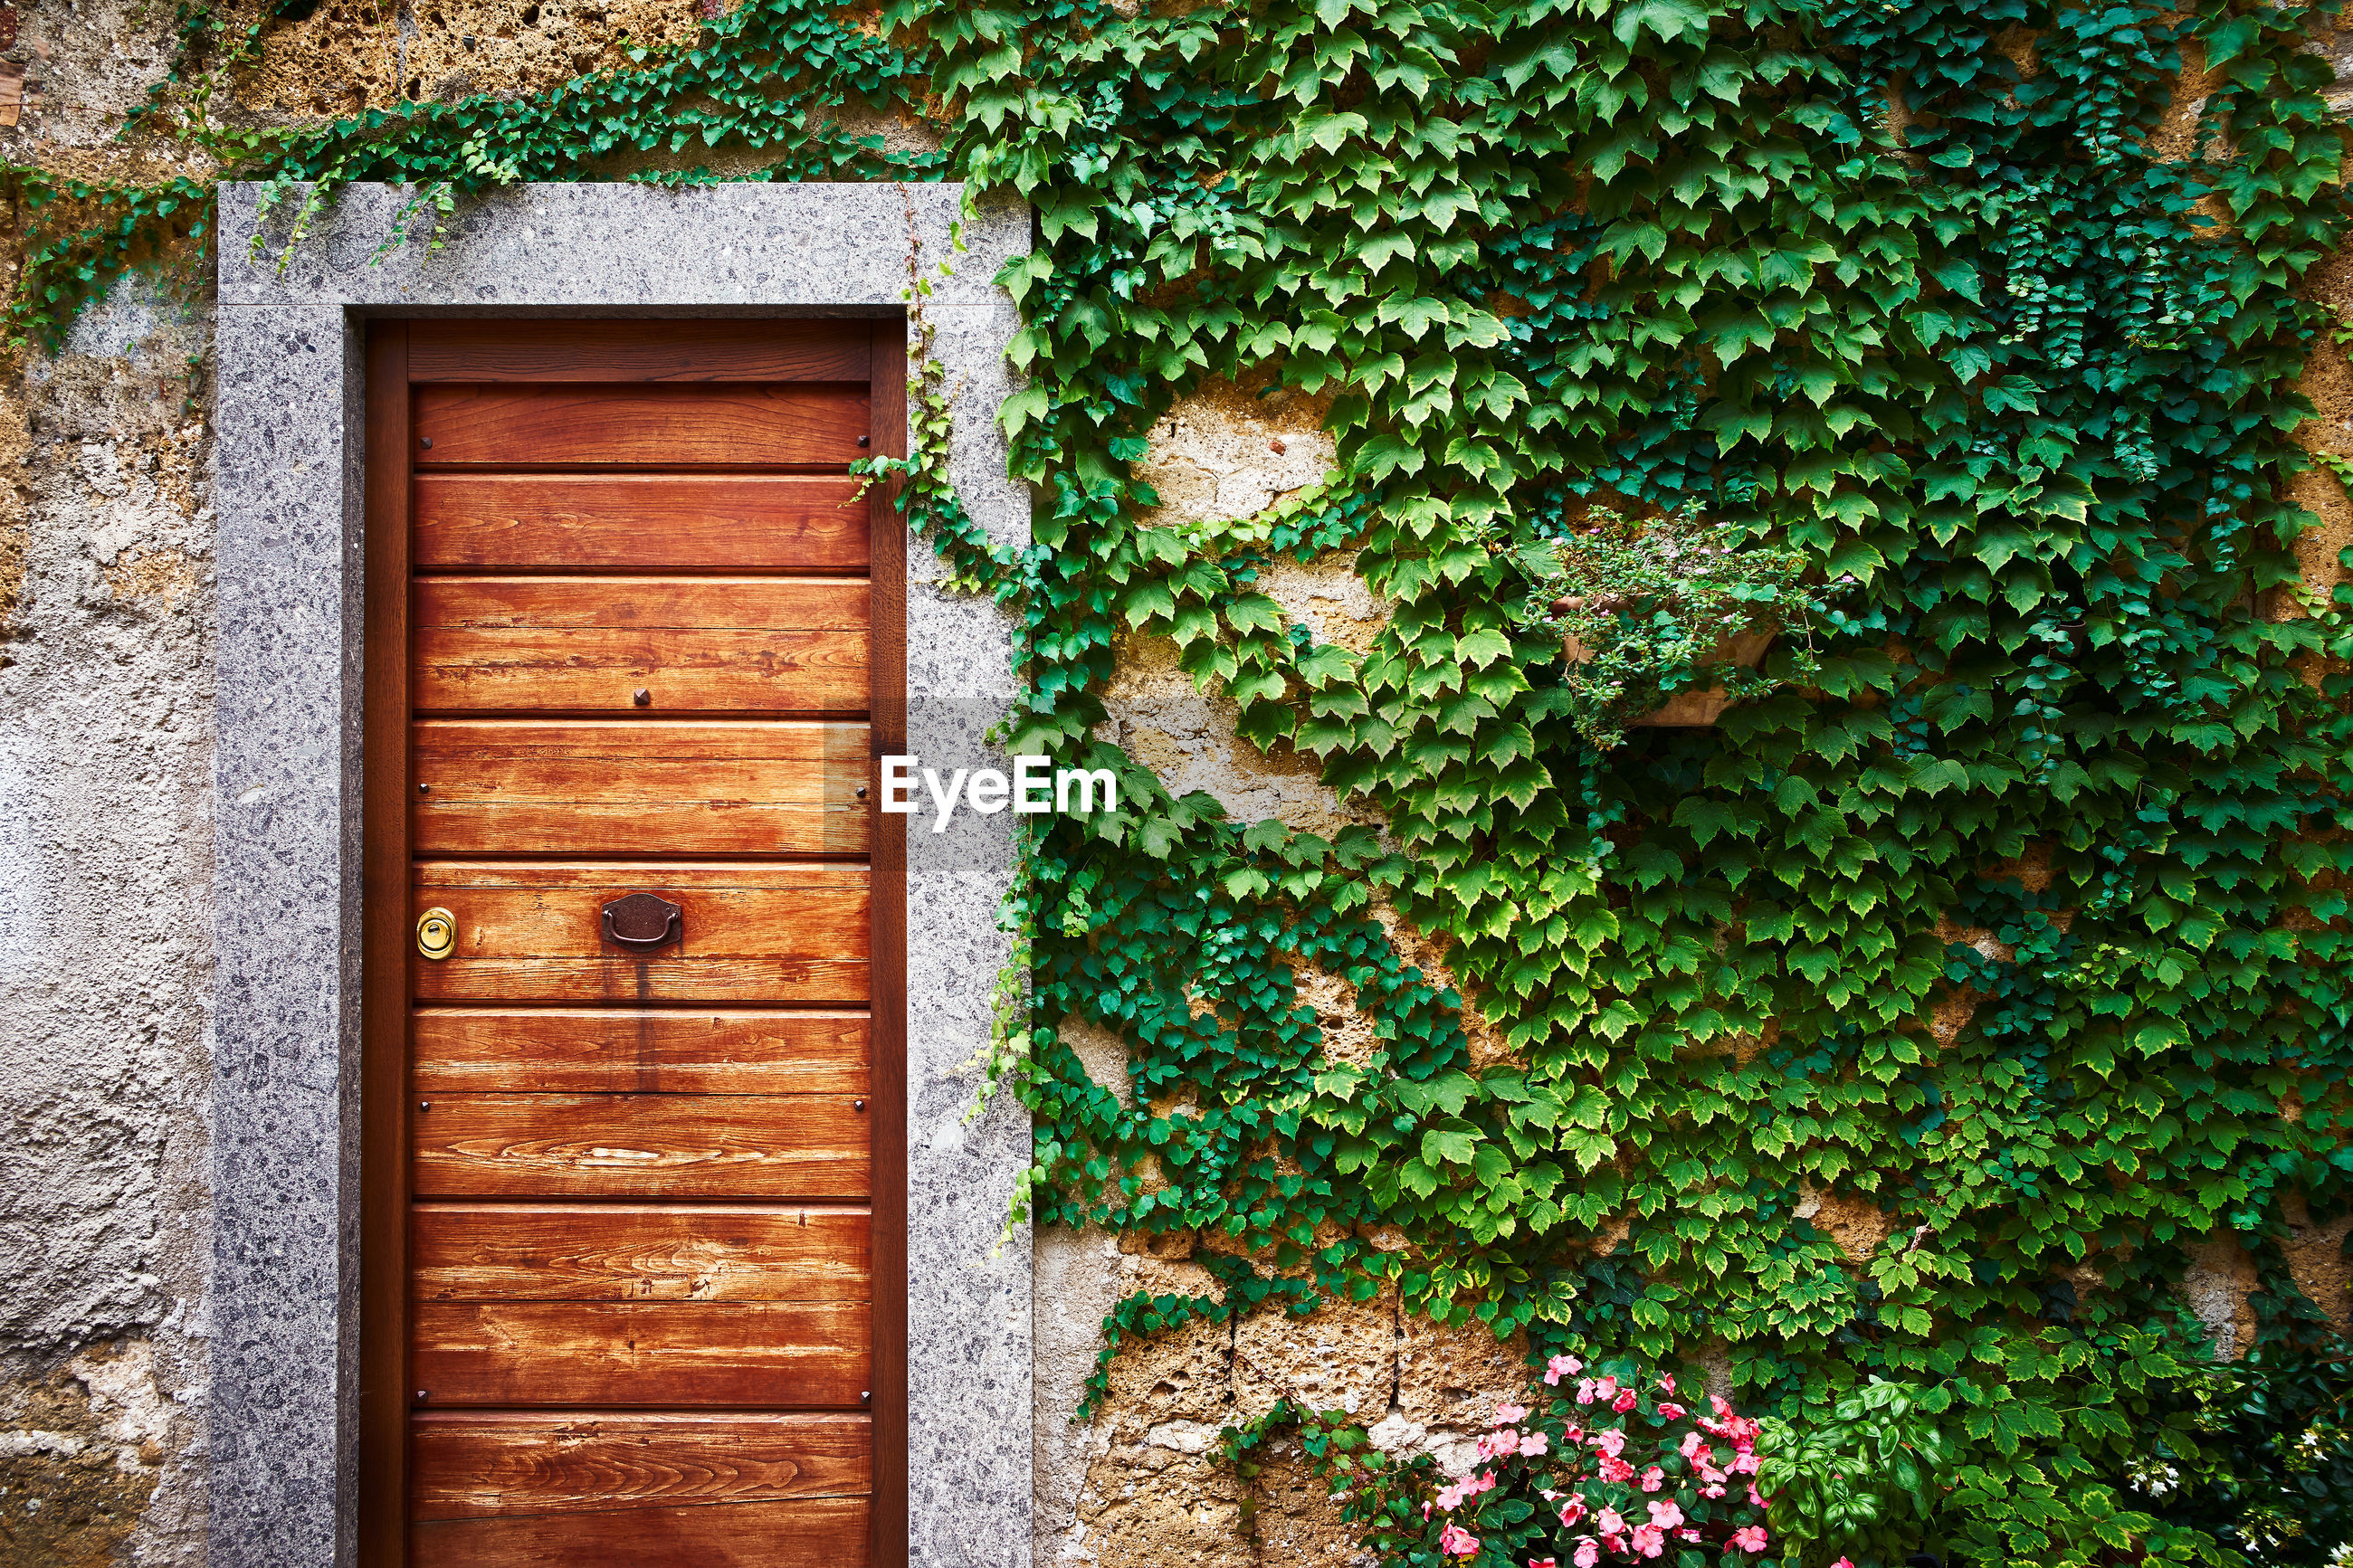 A wooden door with old wall with plants